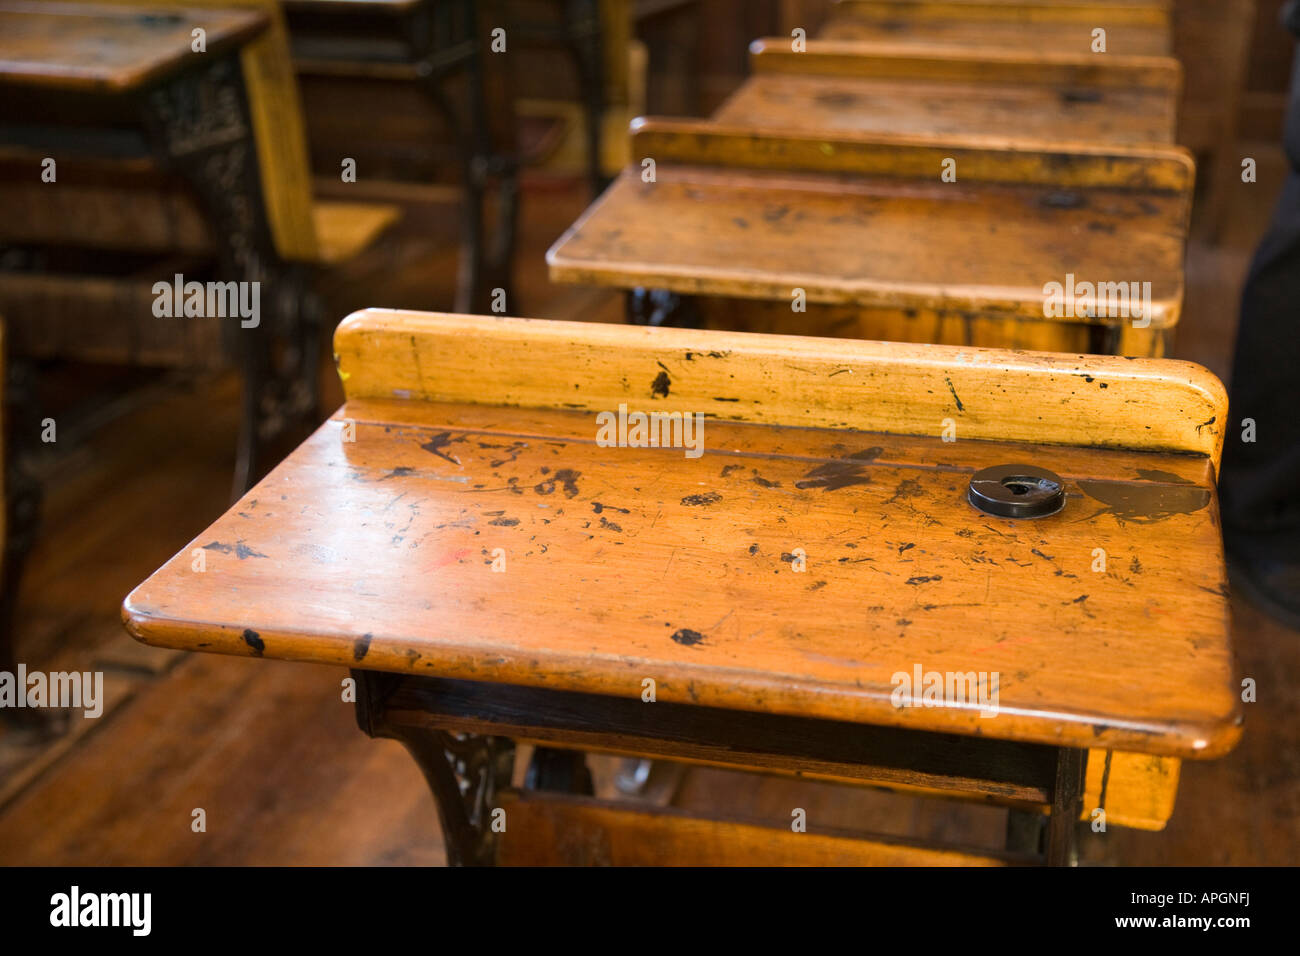 Superb img of Illinois Rockford Wooden Desk With Inkwell For Student Old Fashioned  with #C57A06 color and 1300x956 pixels